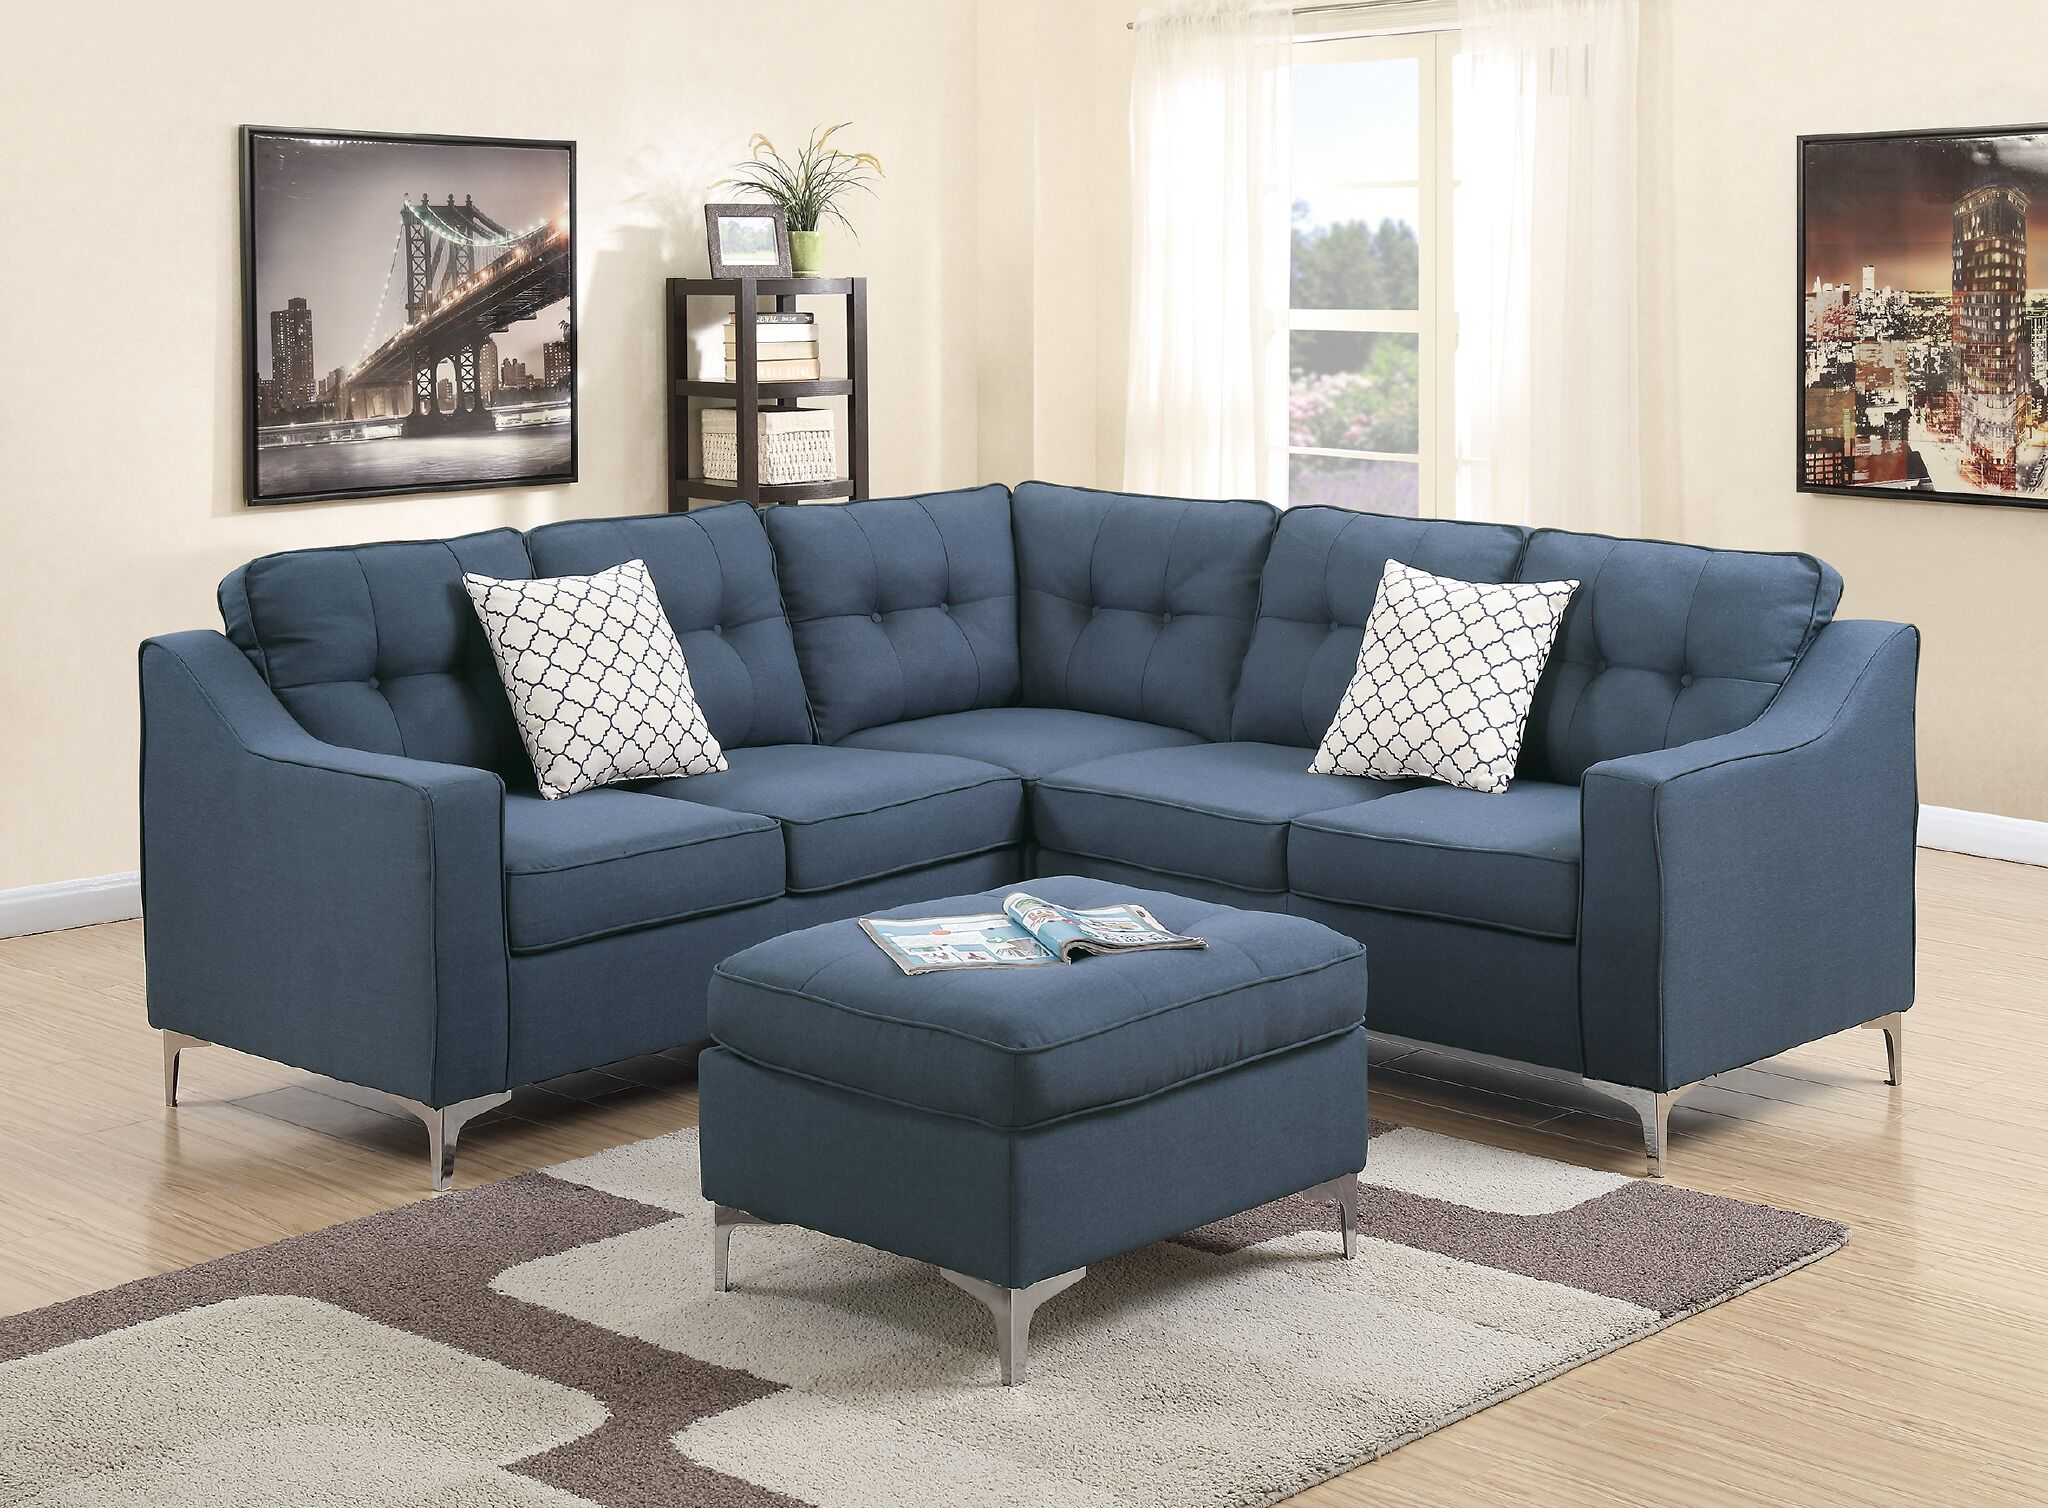 Bacher 4 Piece Living Room Set Upholstery: Navy